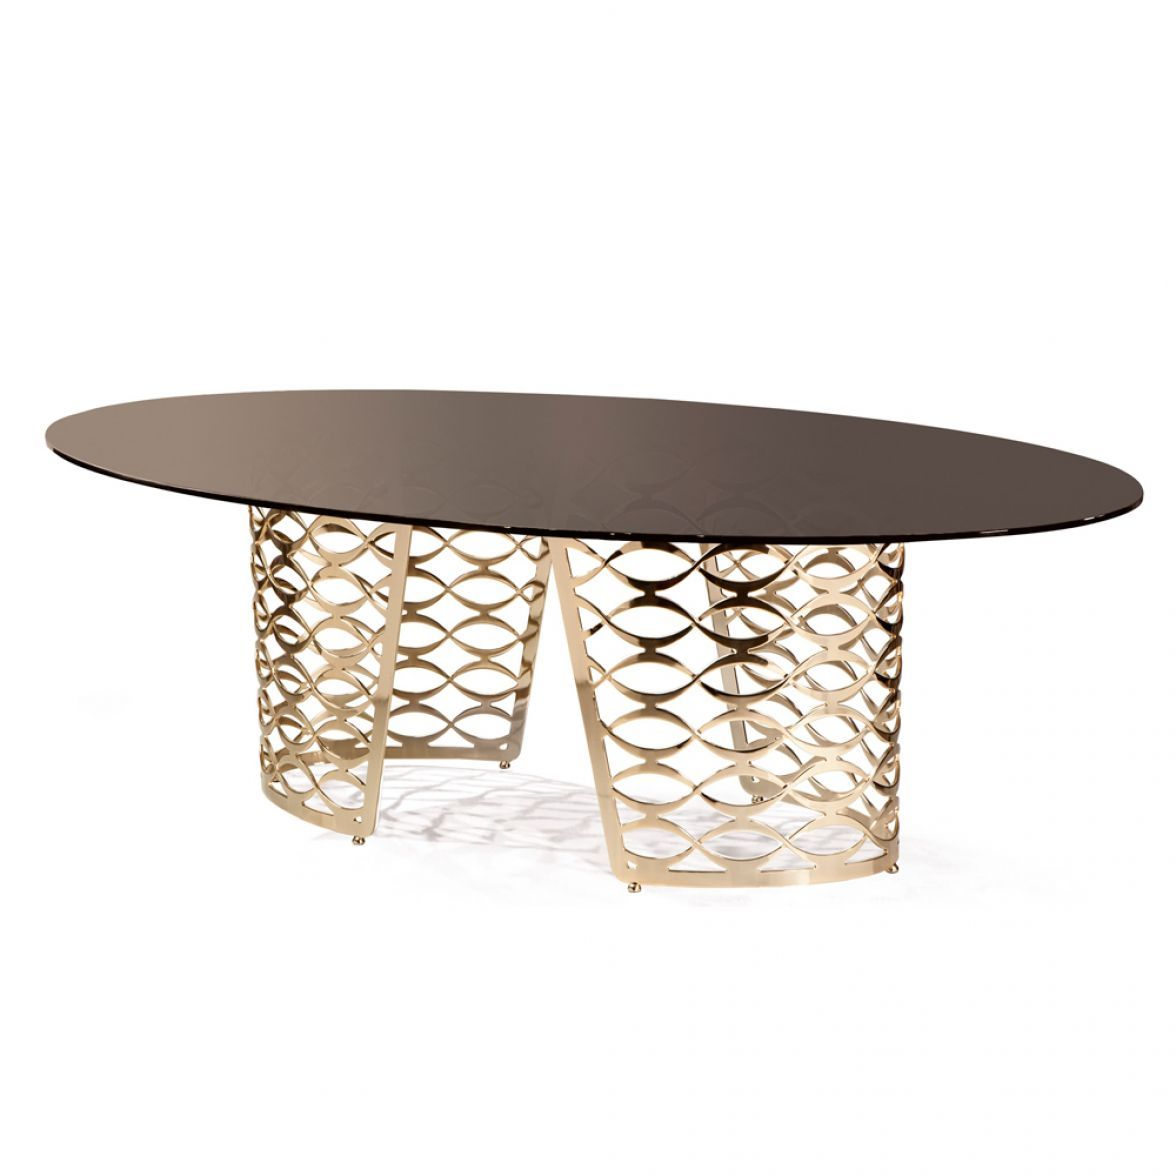 Isidoro table